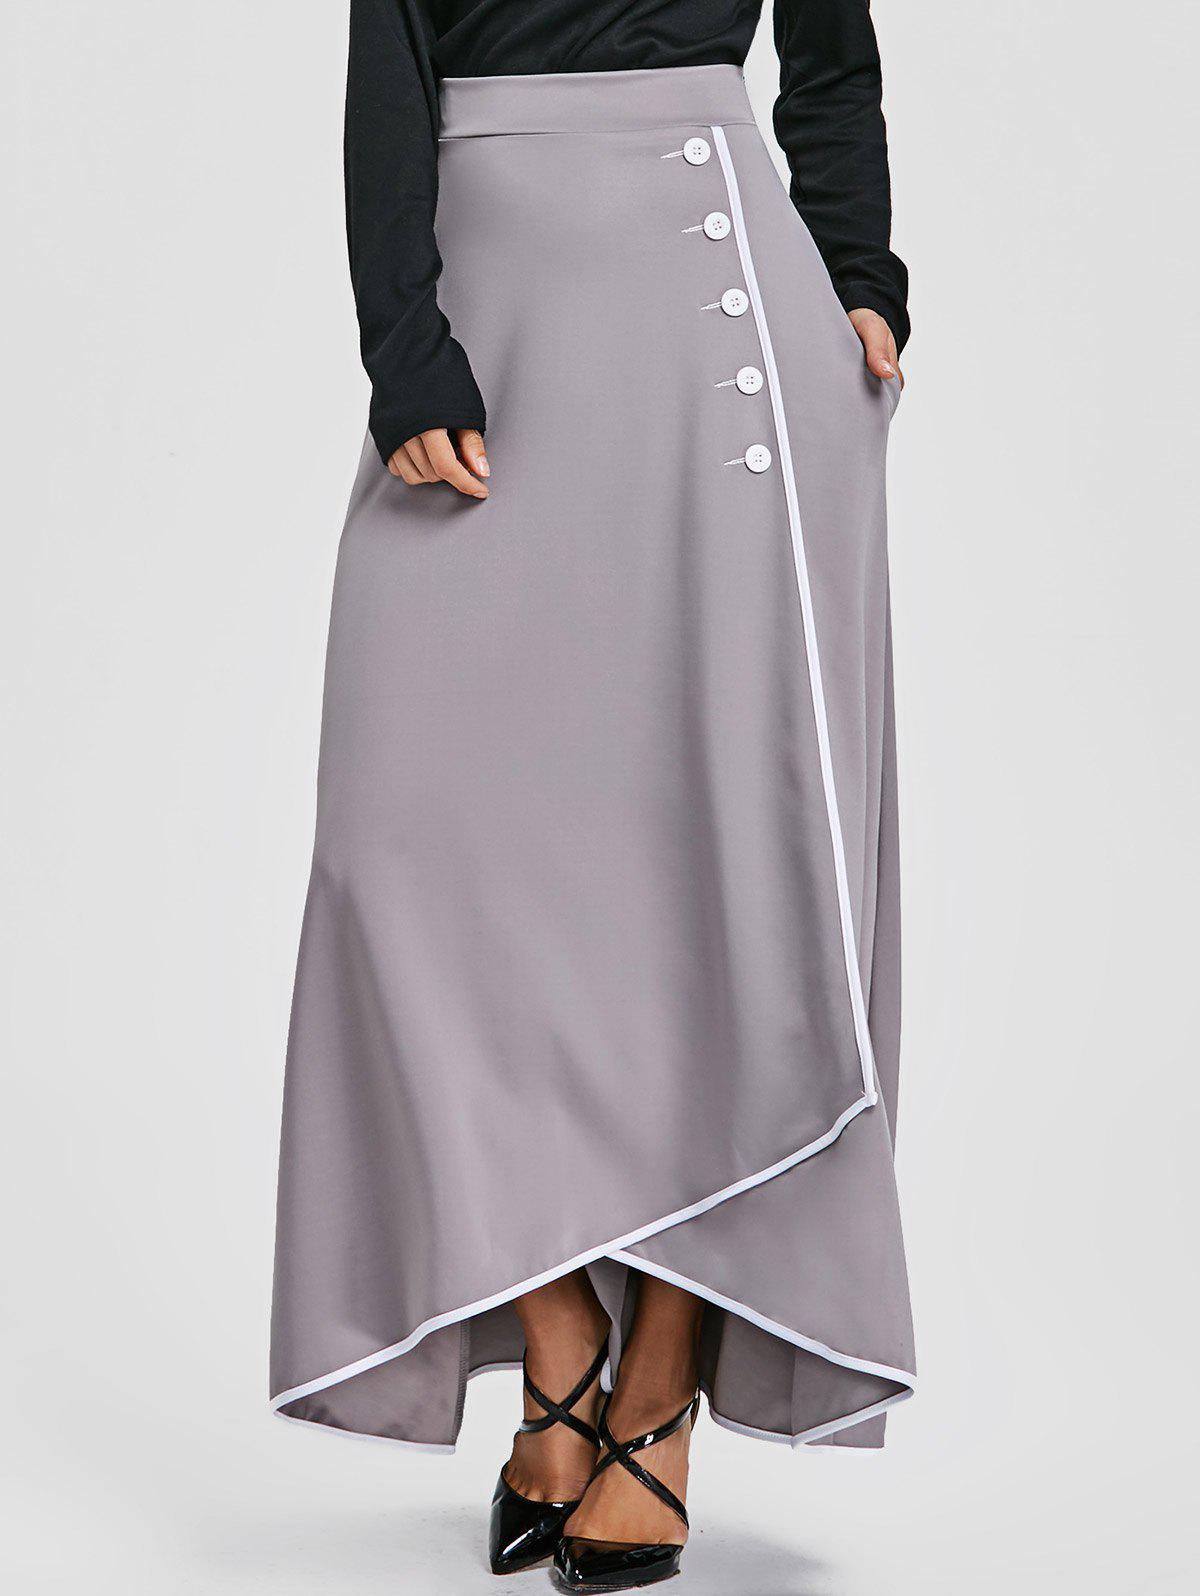 Shop Buttons High Waist Asymmetric Maxi Skirt